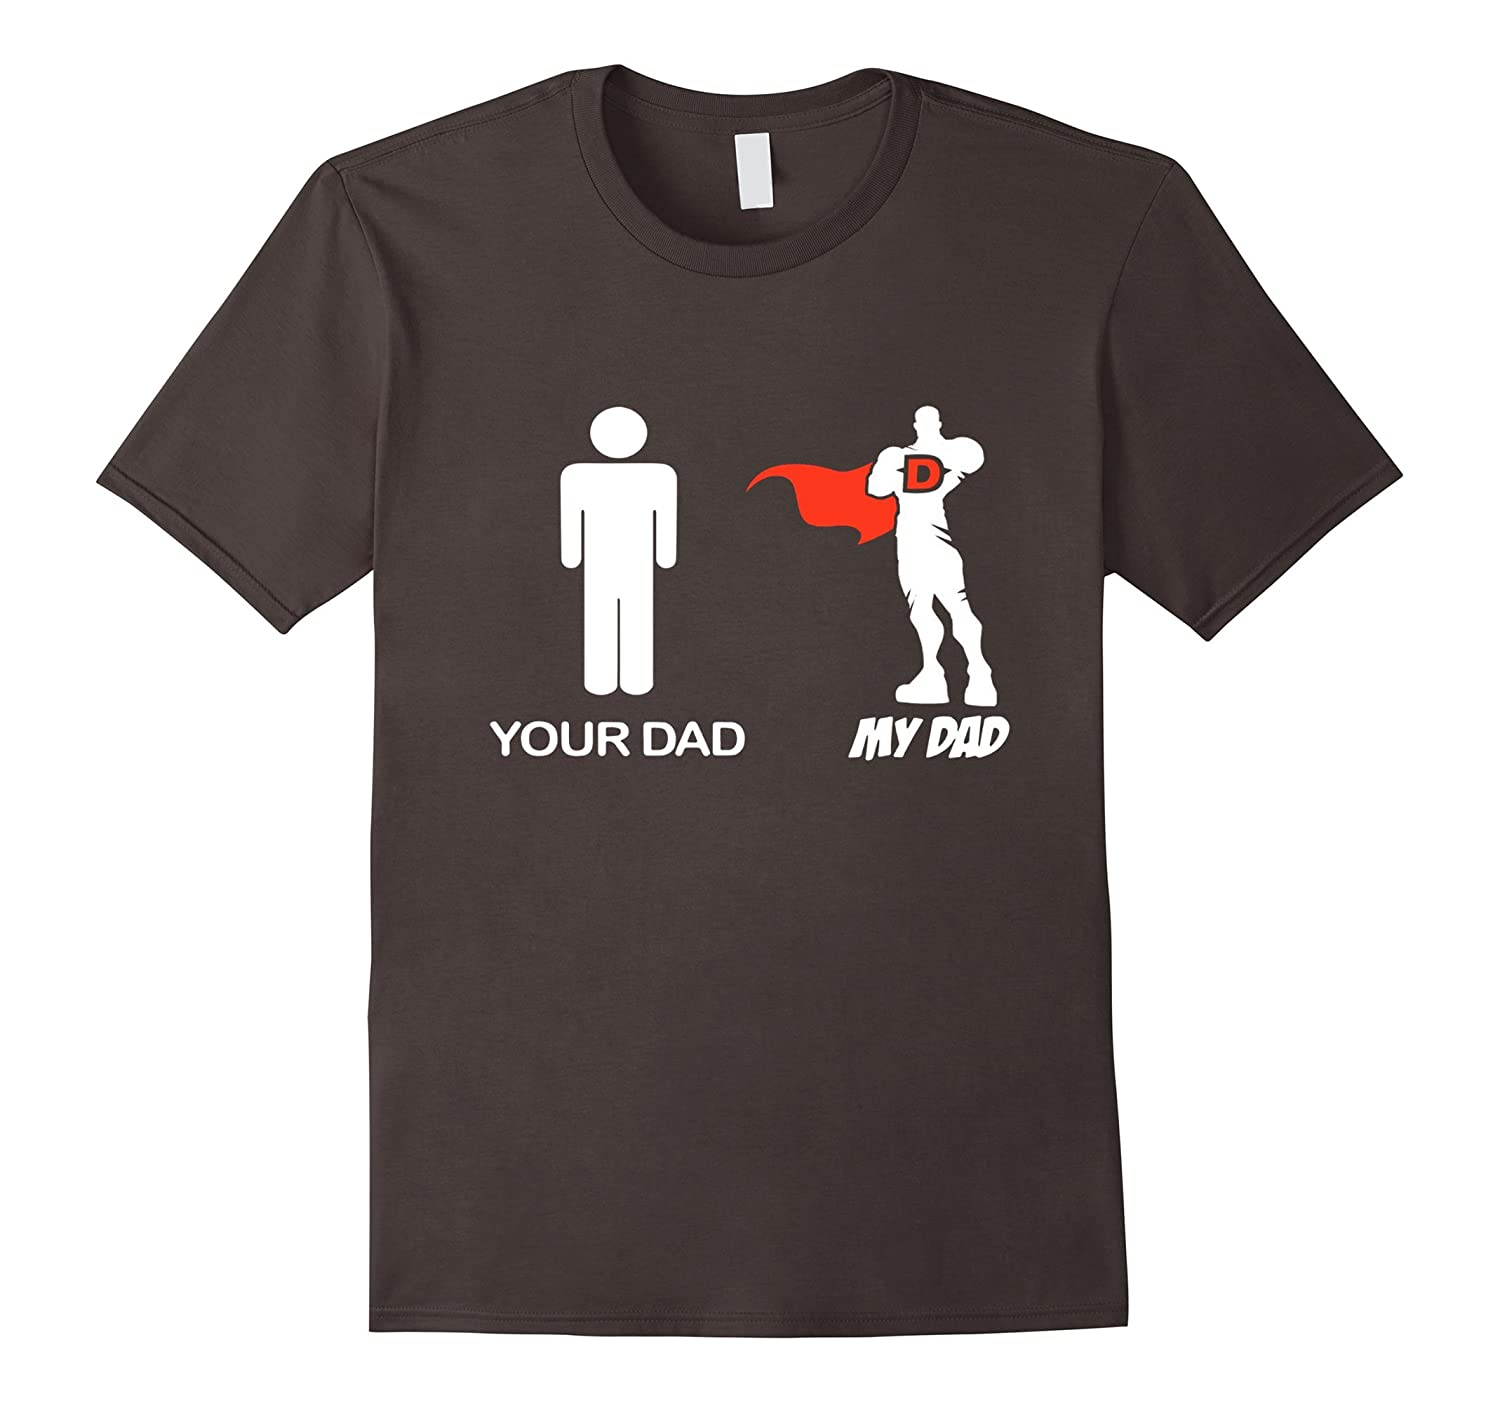 Your dad my DAD - Fathers Day 2017 t shirt-Vaci